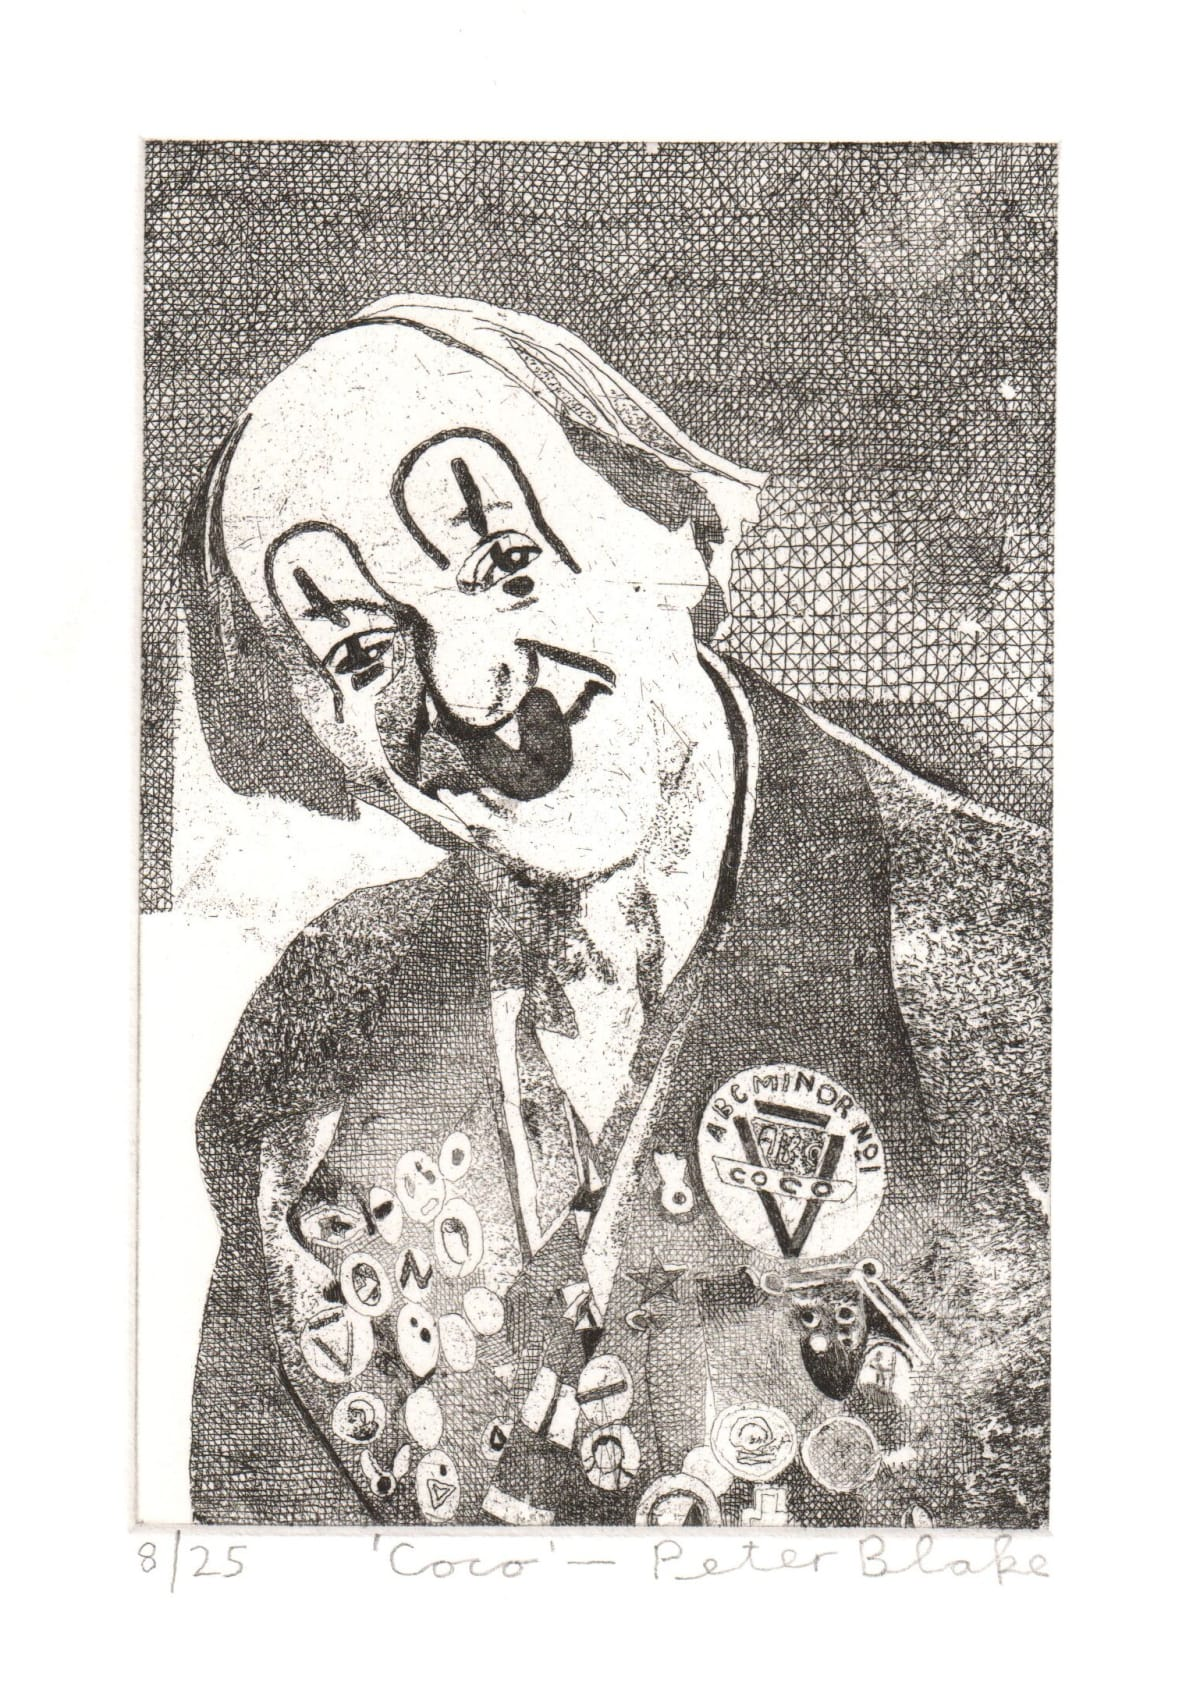 Peter Blake Coco, 2019 Etching on somerset 300gsm velvet Signed, titled and numbered Sheet Size: 26 x 21 cm Image size: 10 x 15 cm Edition of 25